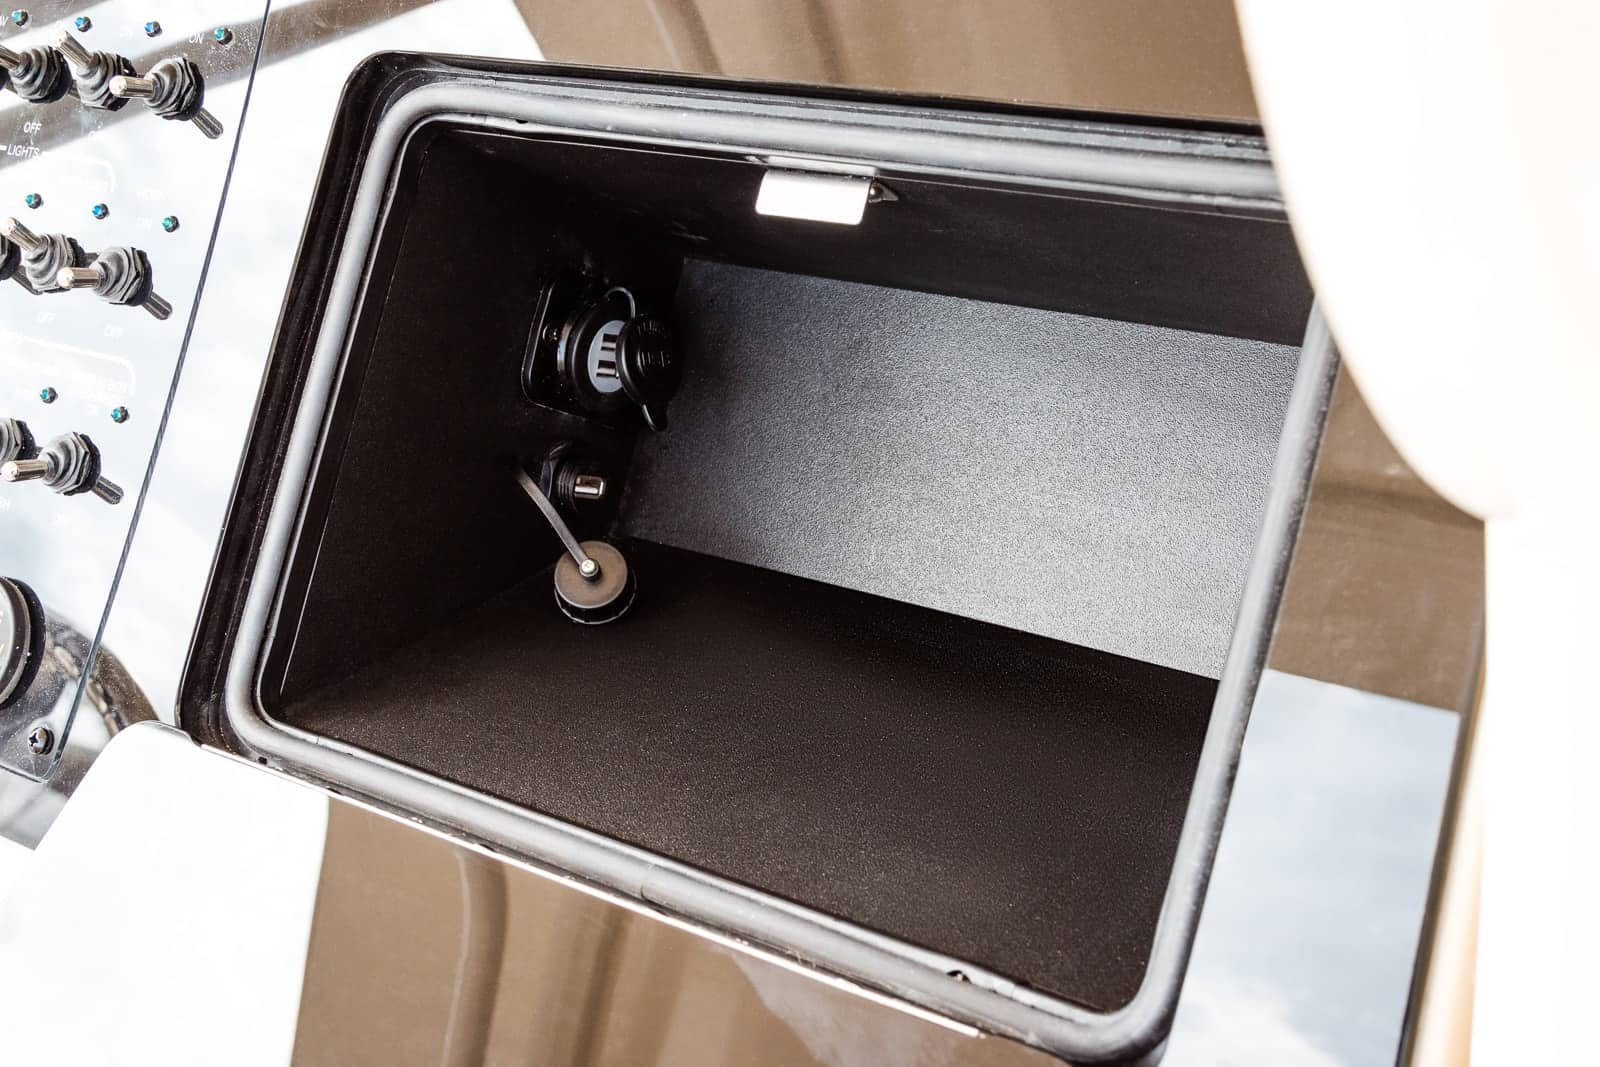 235XSF glove box and USB connections